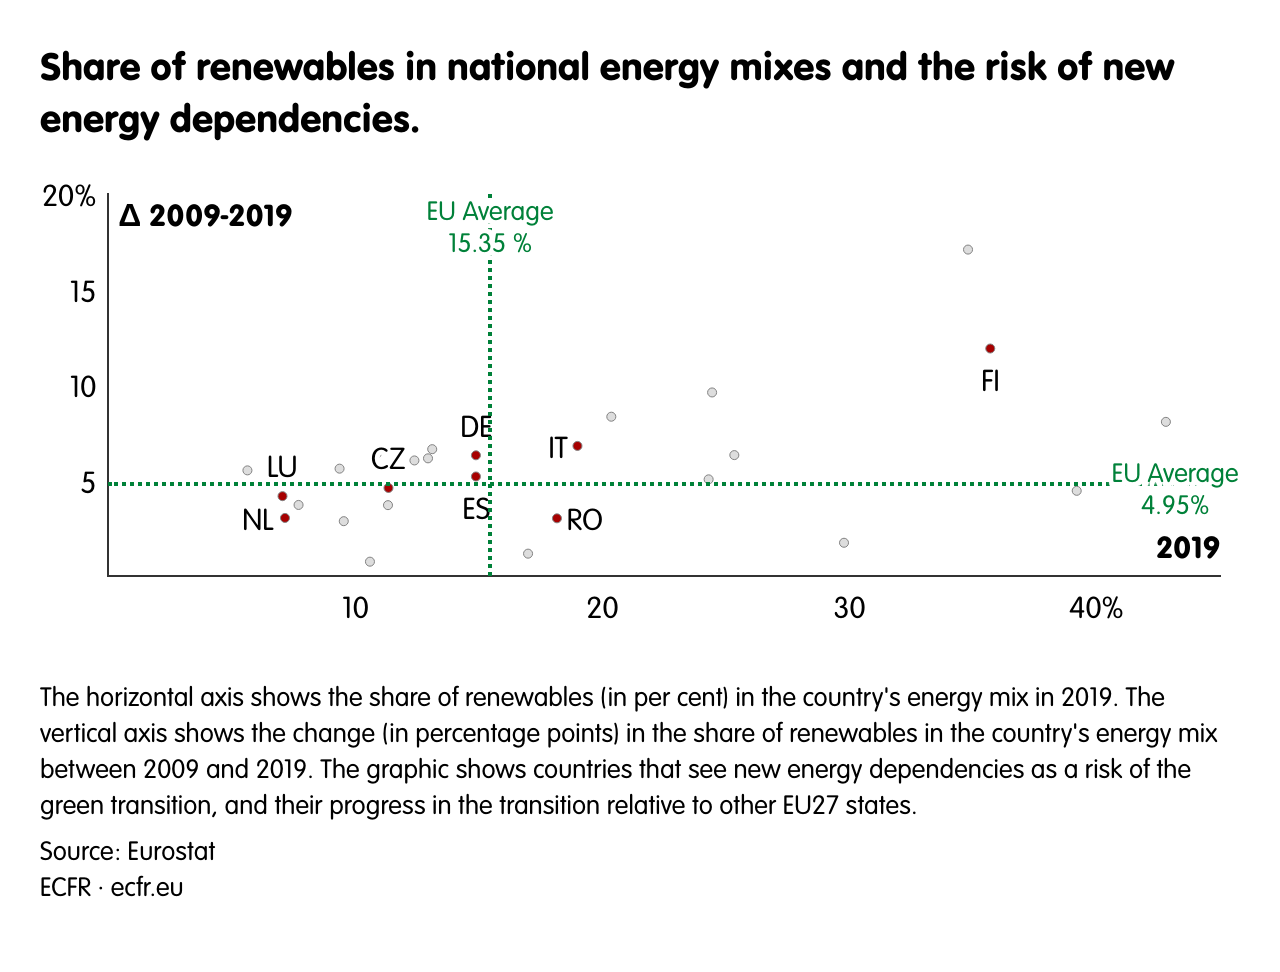 Share of renewables in national energy mixes and the risk of new energy dependencies.